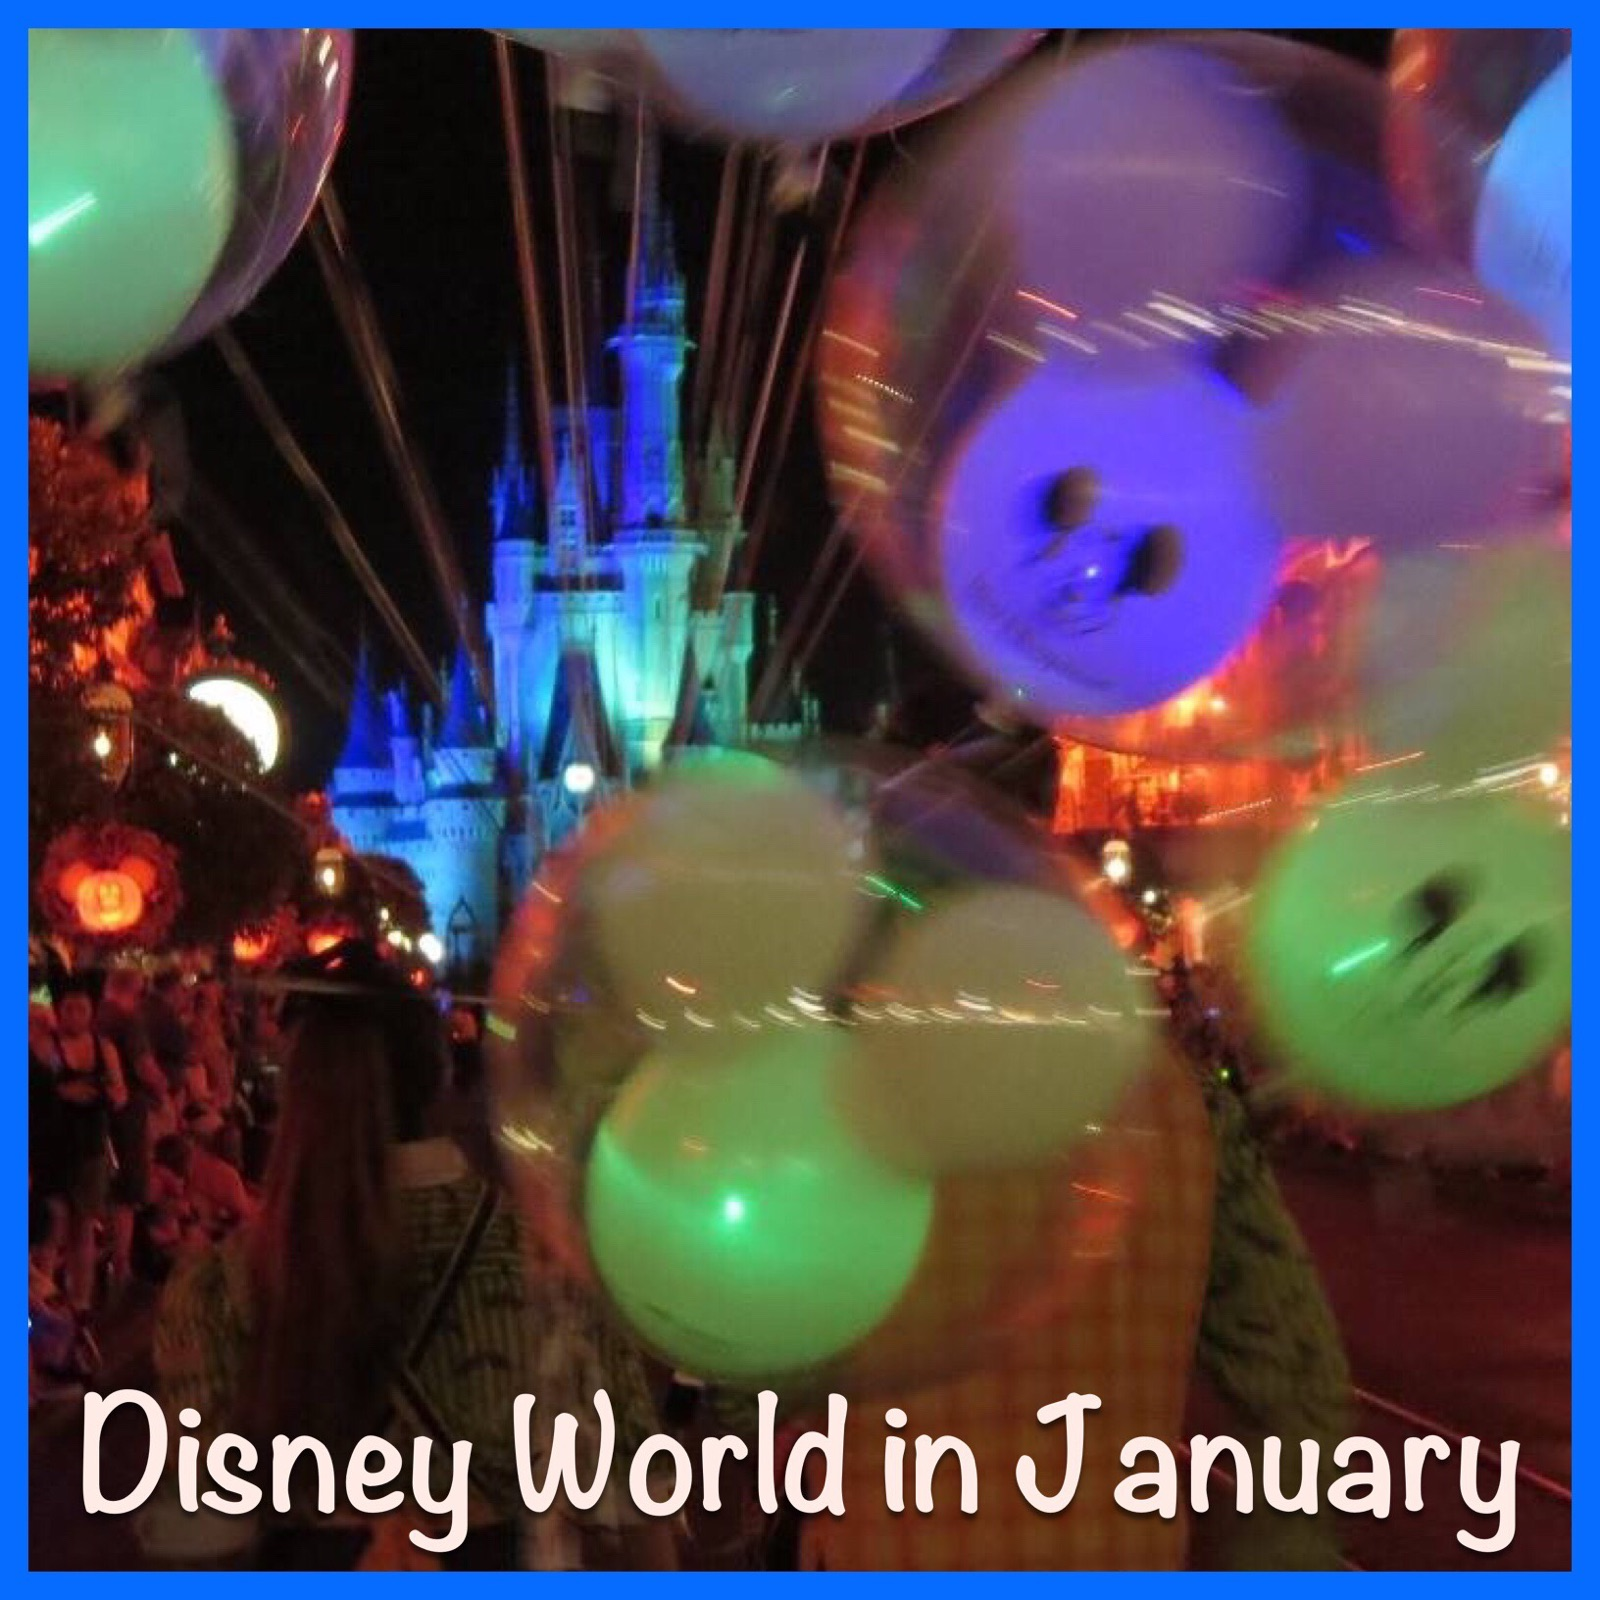 Important Information for Your January Trip to Disney World - Weather, special events, closures and refurbishments and more.